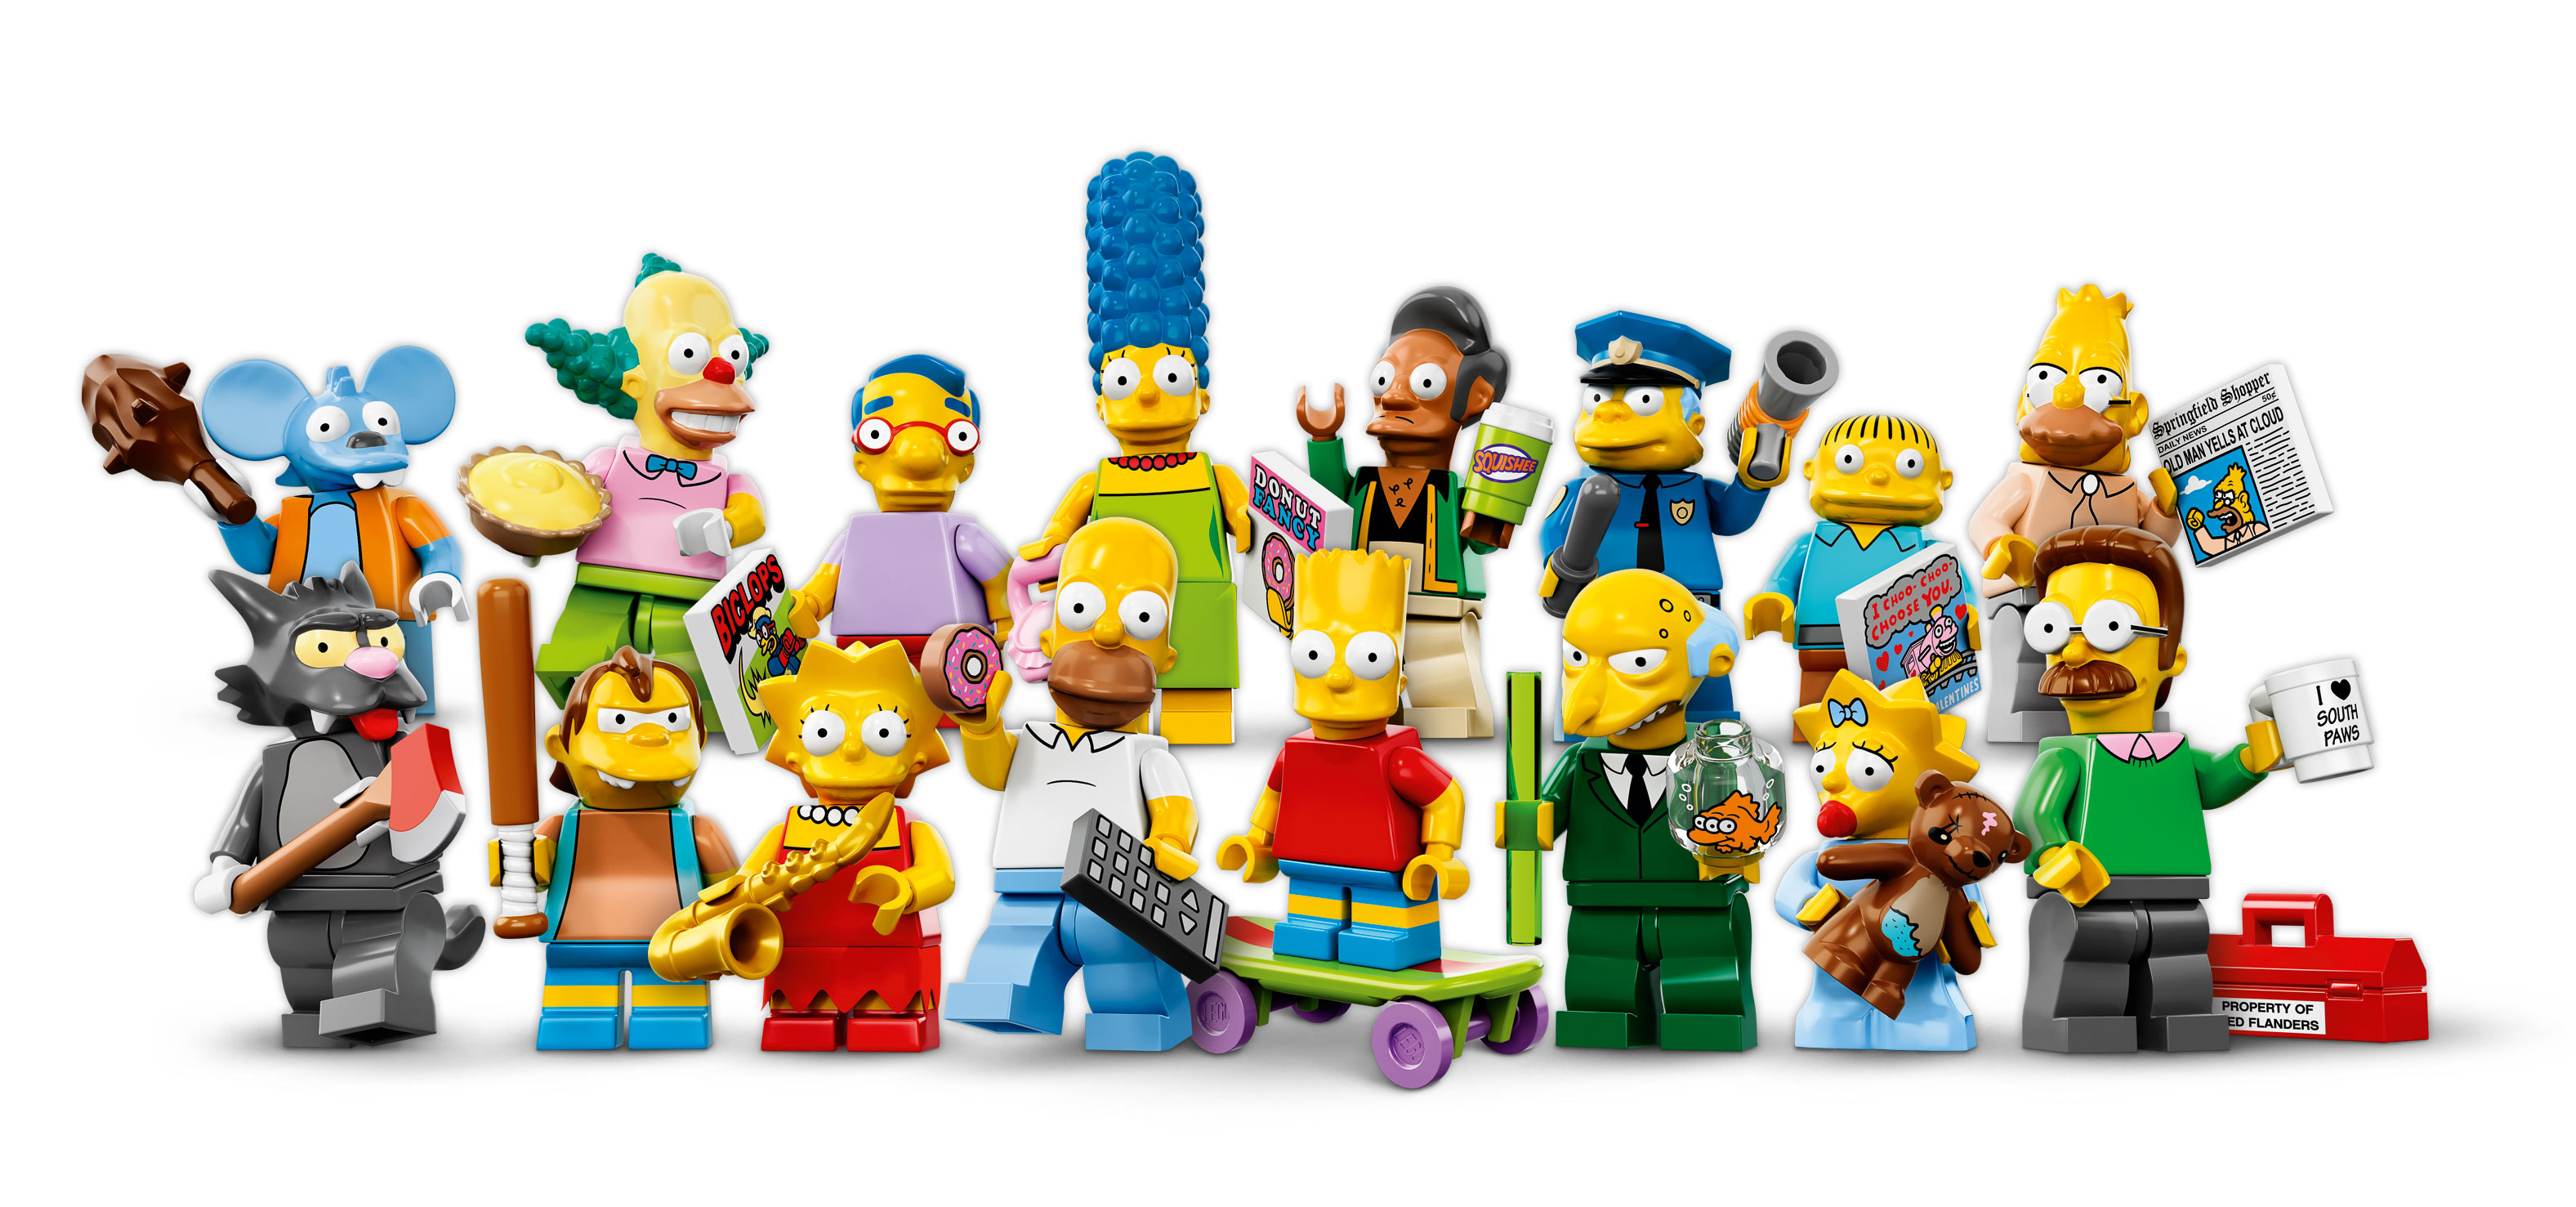 LEGO Reveals The Simpsons Collectable - 607.6KB